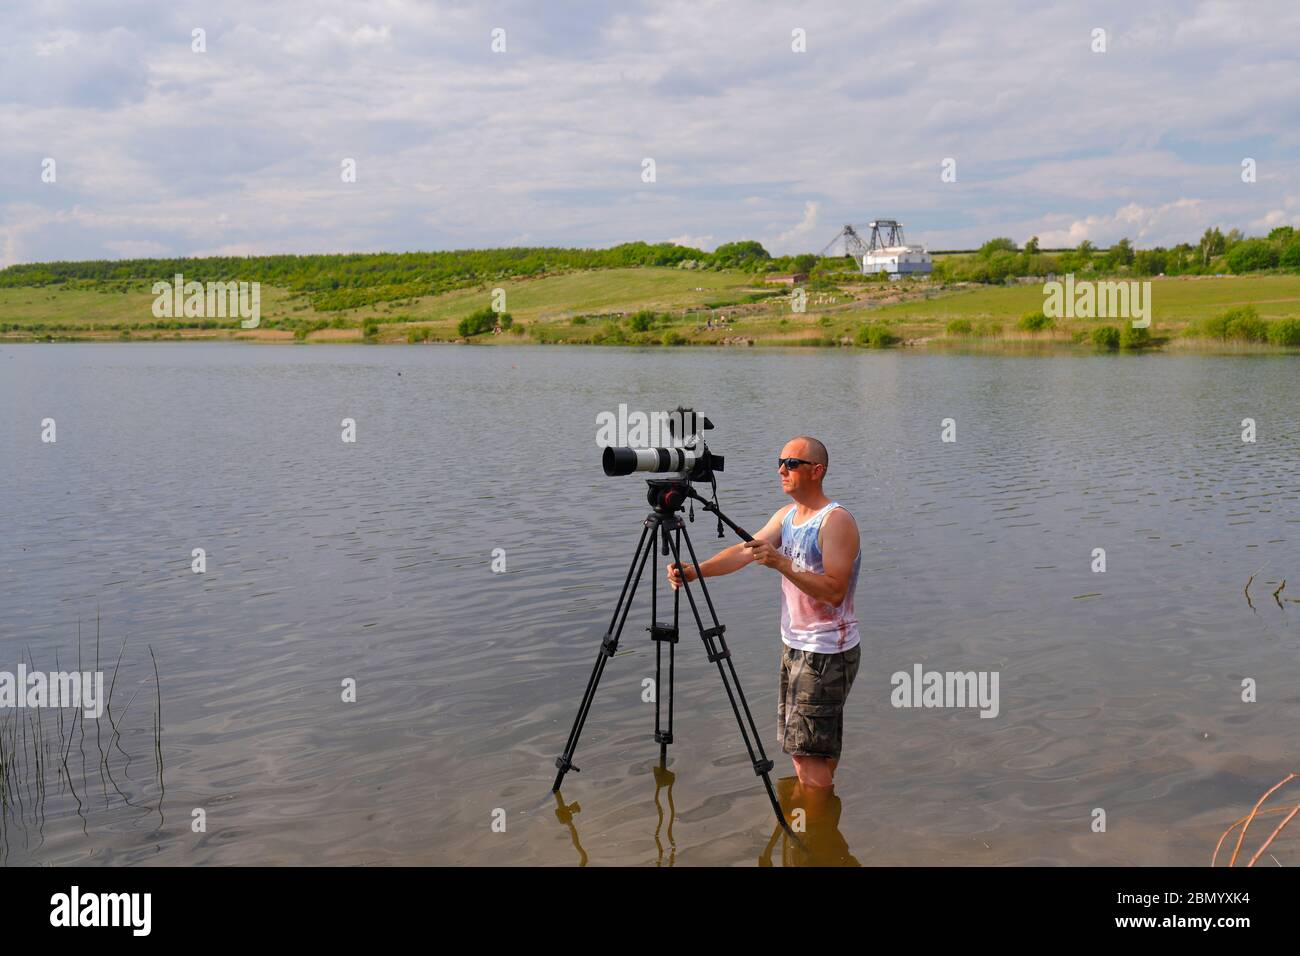 A photographer standing in shallow water, to get the angle that wasn't possible from the edge of the lake at RSPB St Aidan's Stock Photo